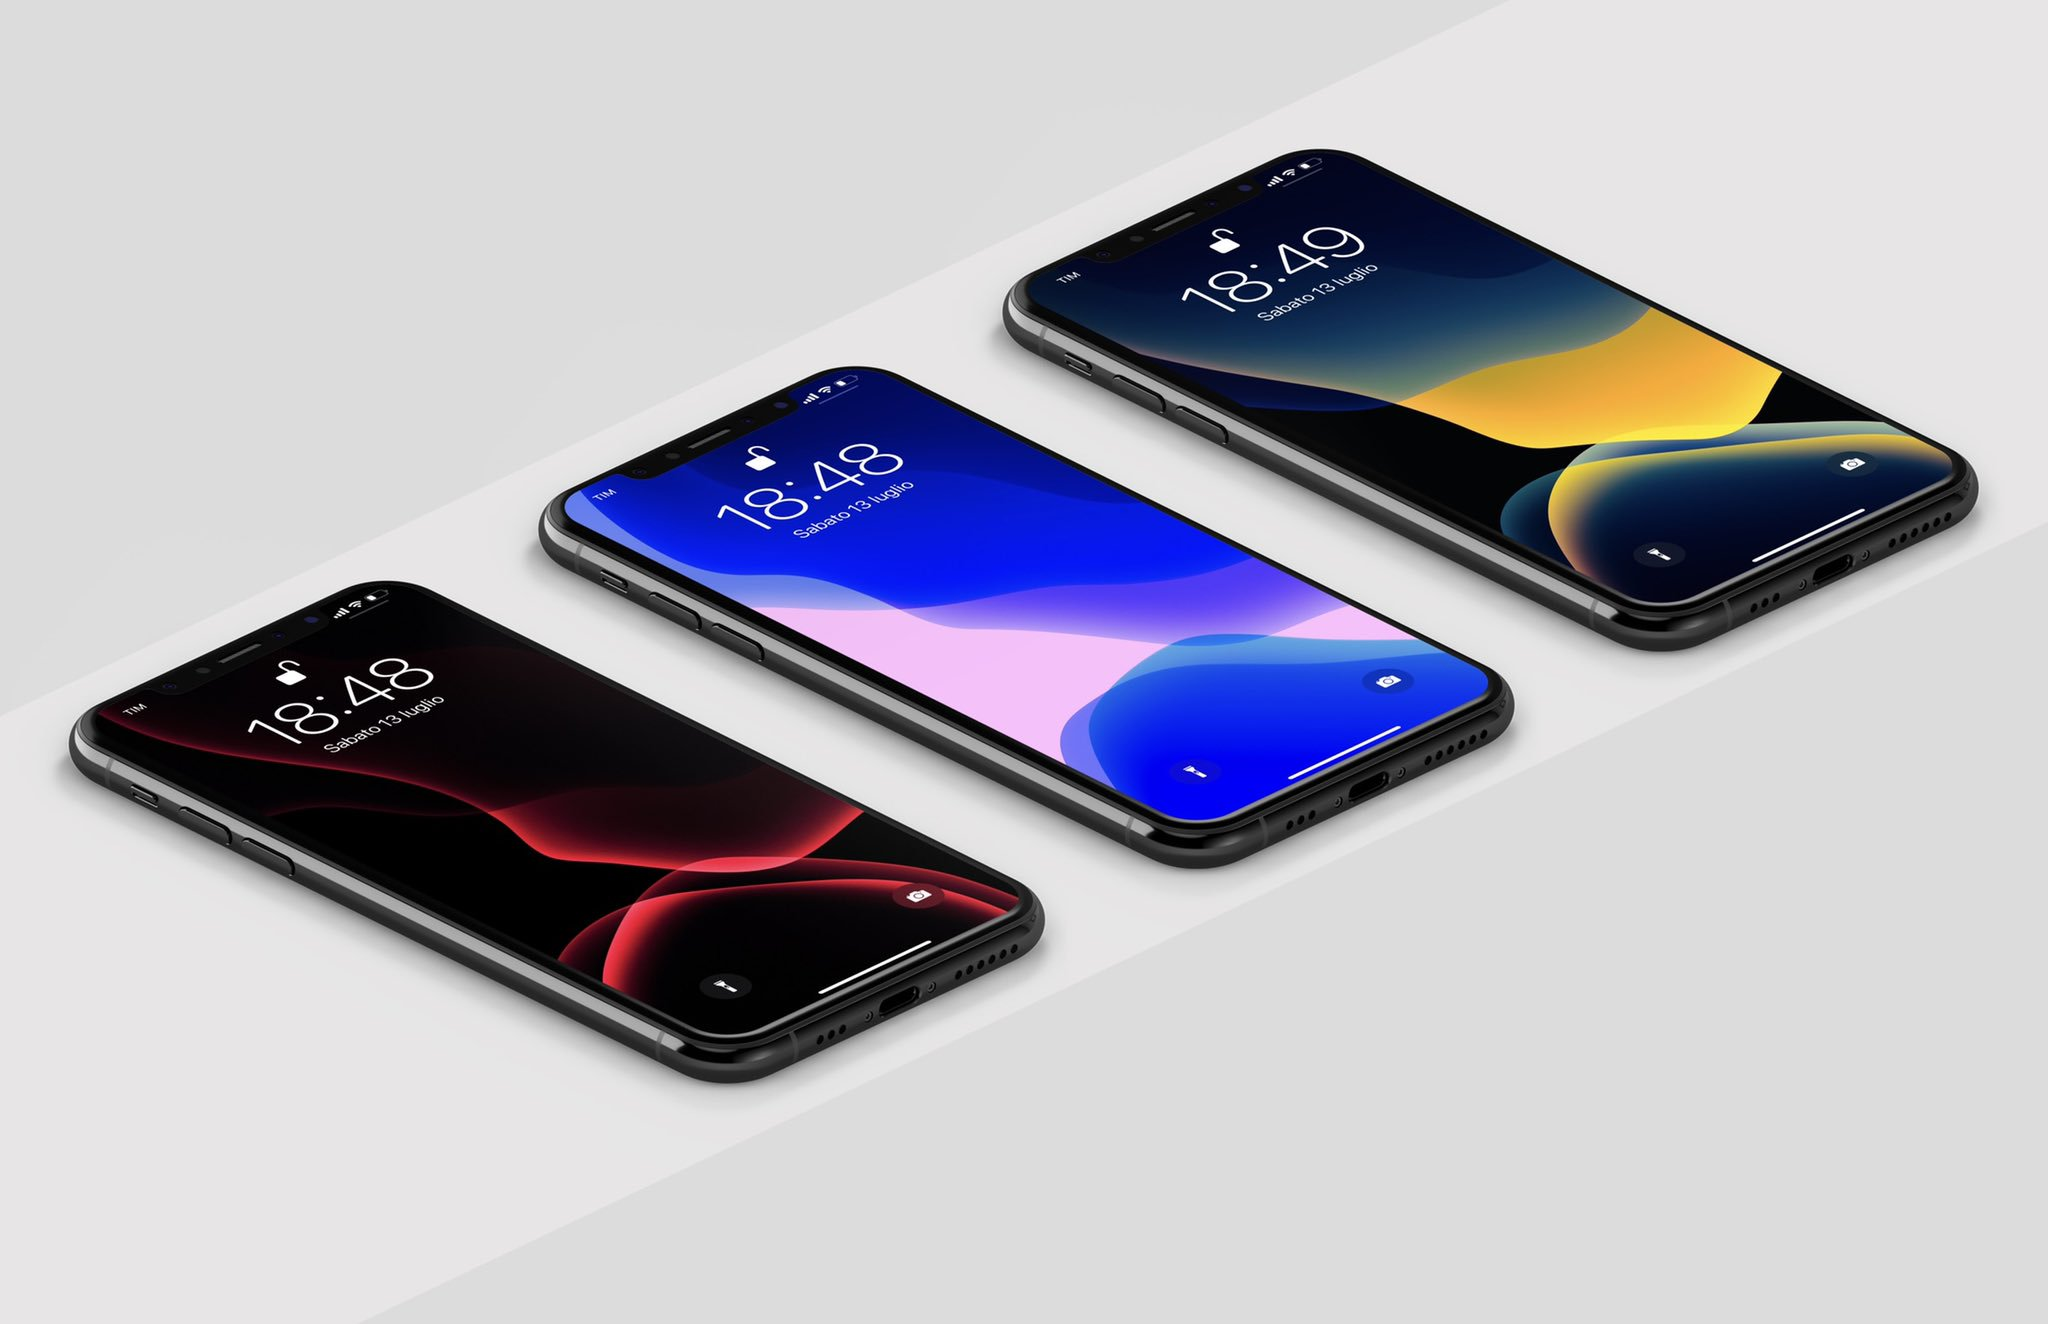 Modified IOS 13 Wallpapers For IPhone And IPad